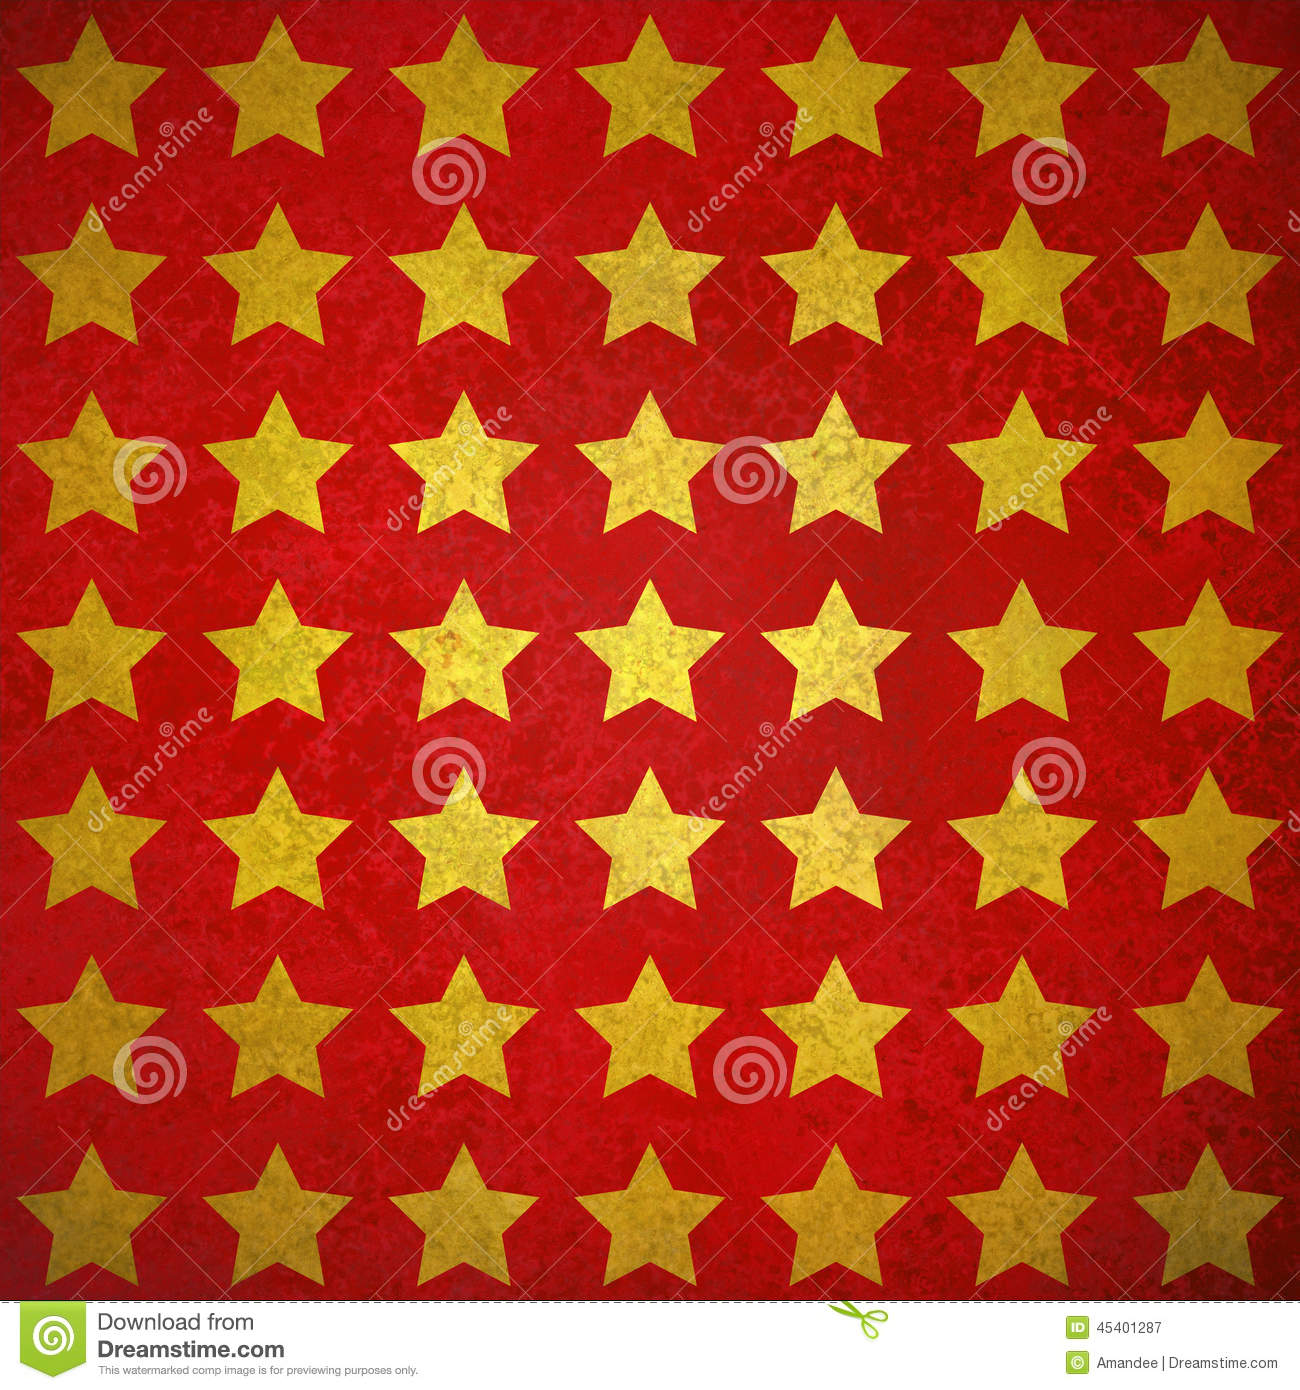 fancy shiny gold stars on textured red background design